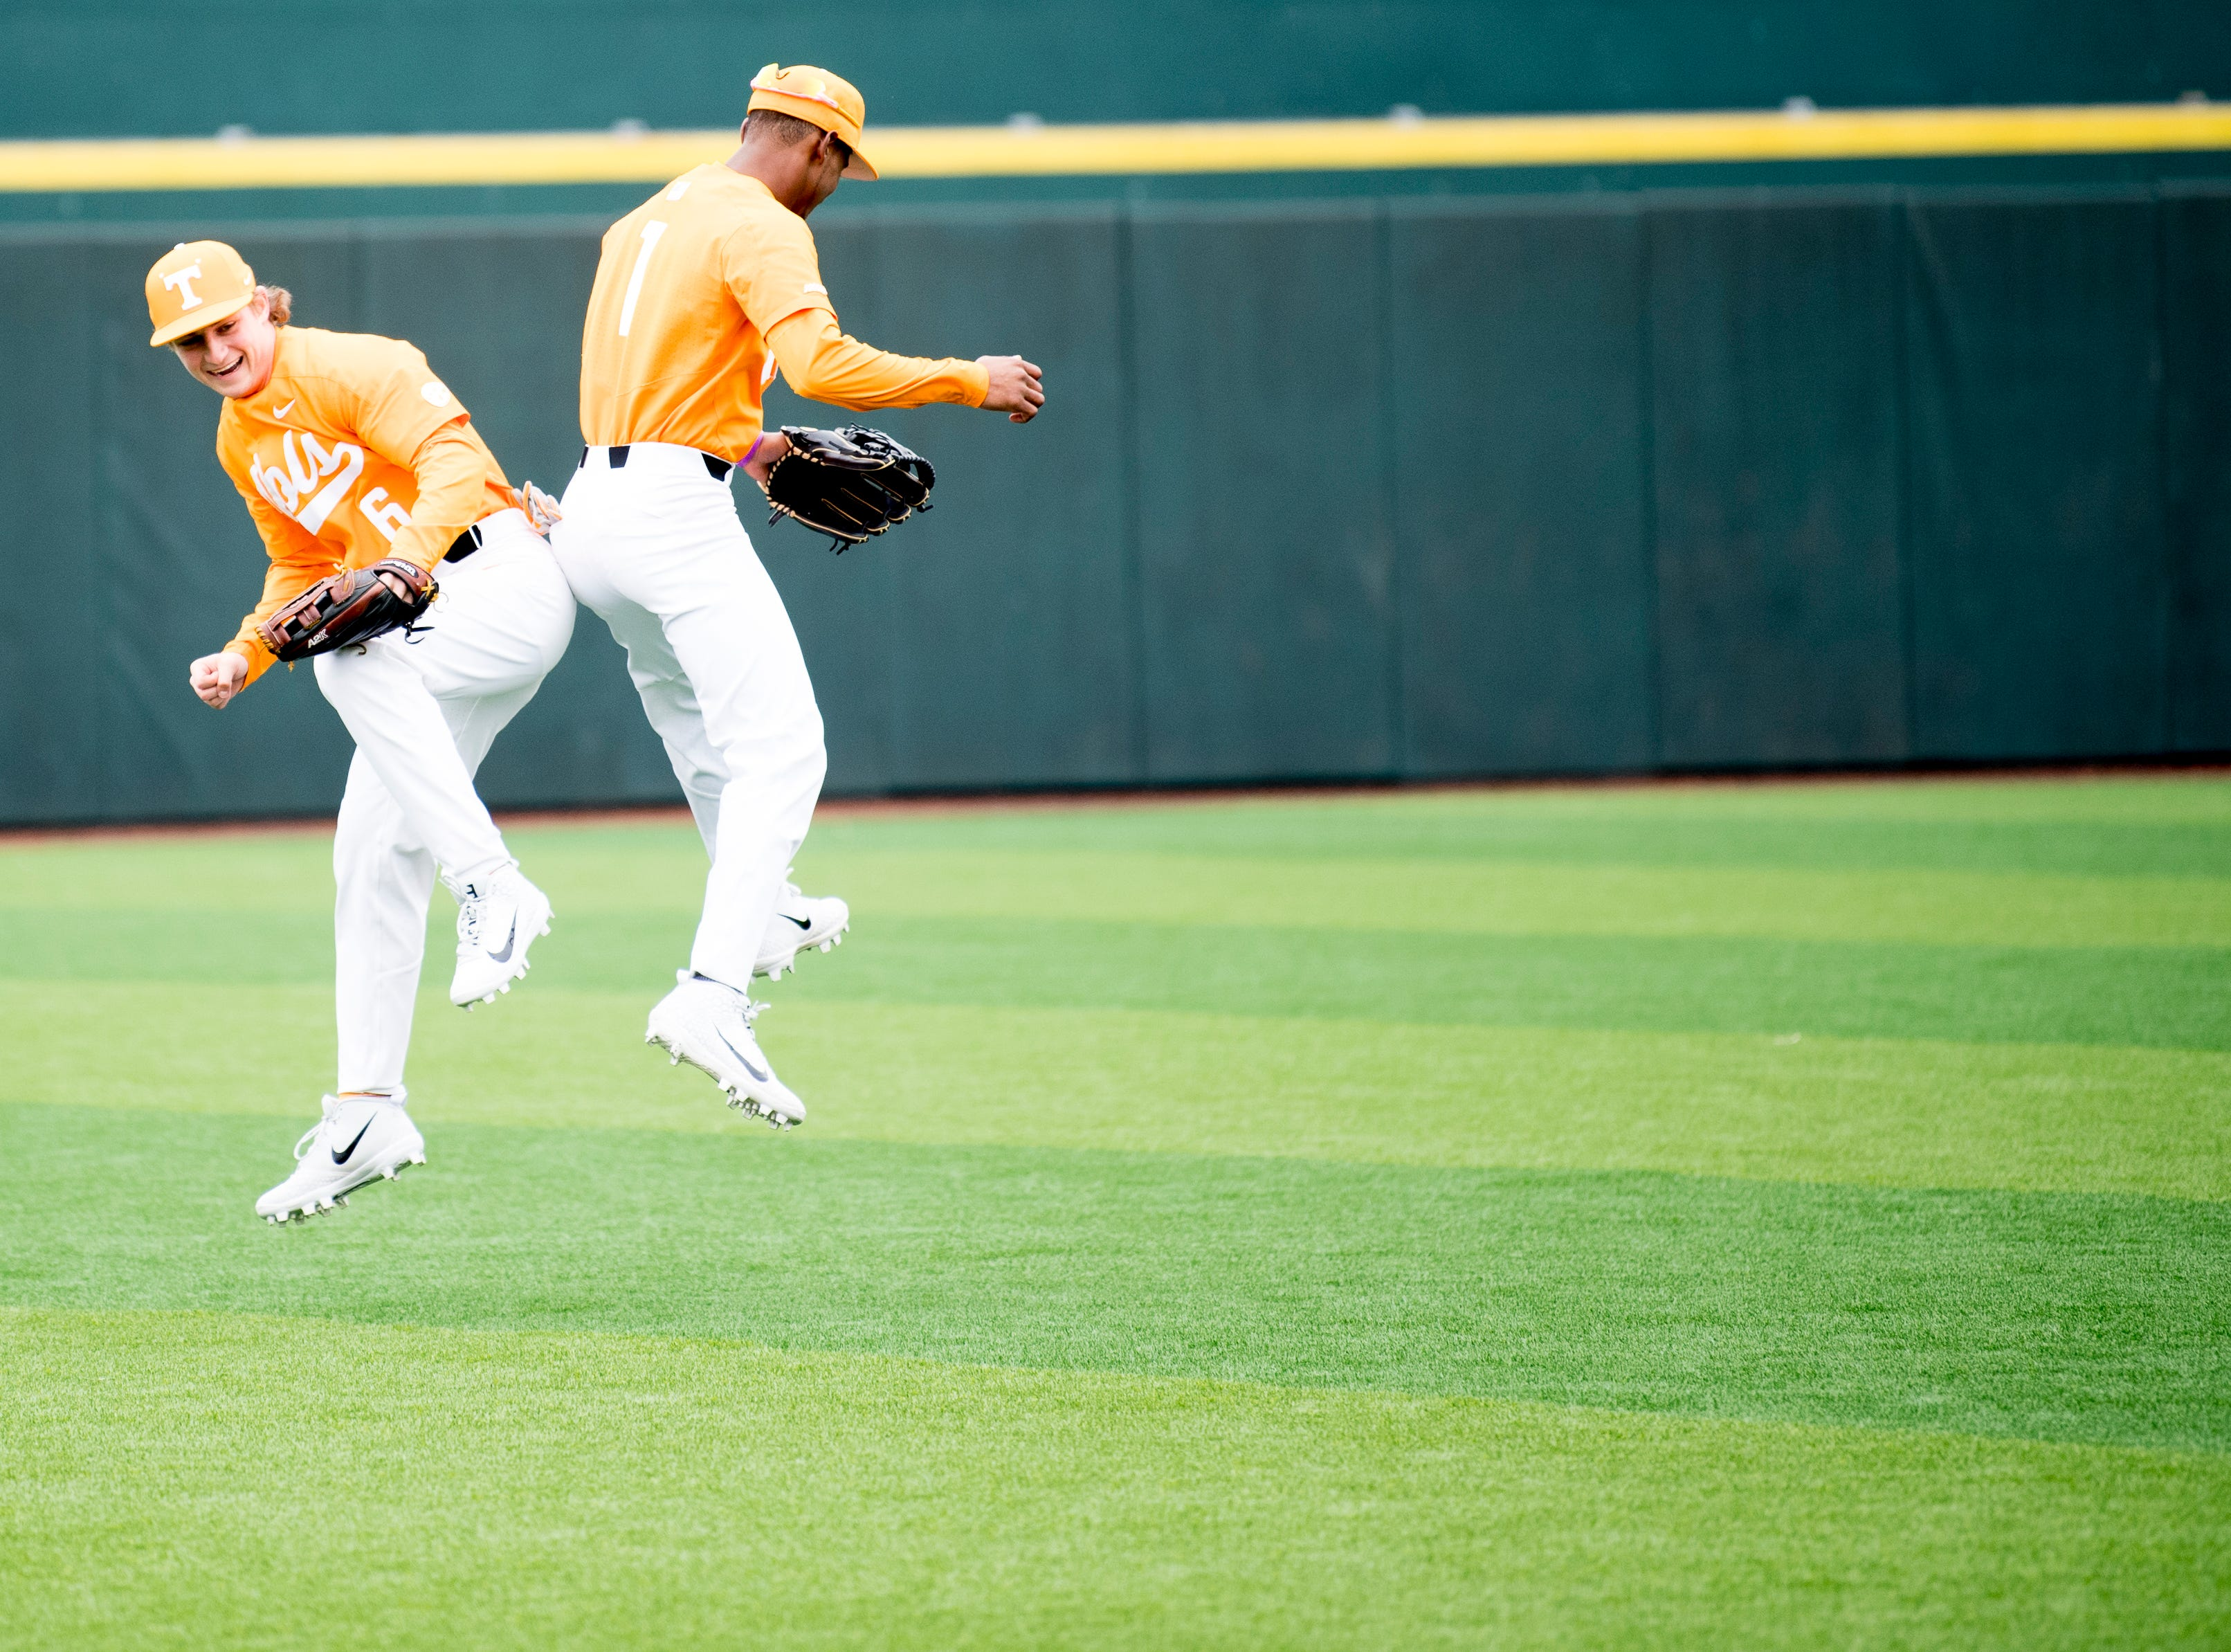 Tennessee outfielder/infielder Al Soularie (1) and Tennessee outfielder Evan Russell (6) celebrate together during a Tennessee baseball home opener game against Appalachian State at Lindsey Nelson Stadium in Knoxville, Tennessee on Saturday, February 16, 2019.